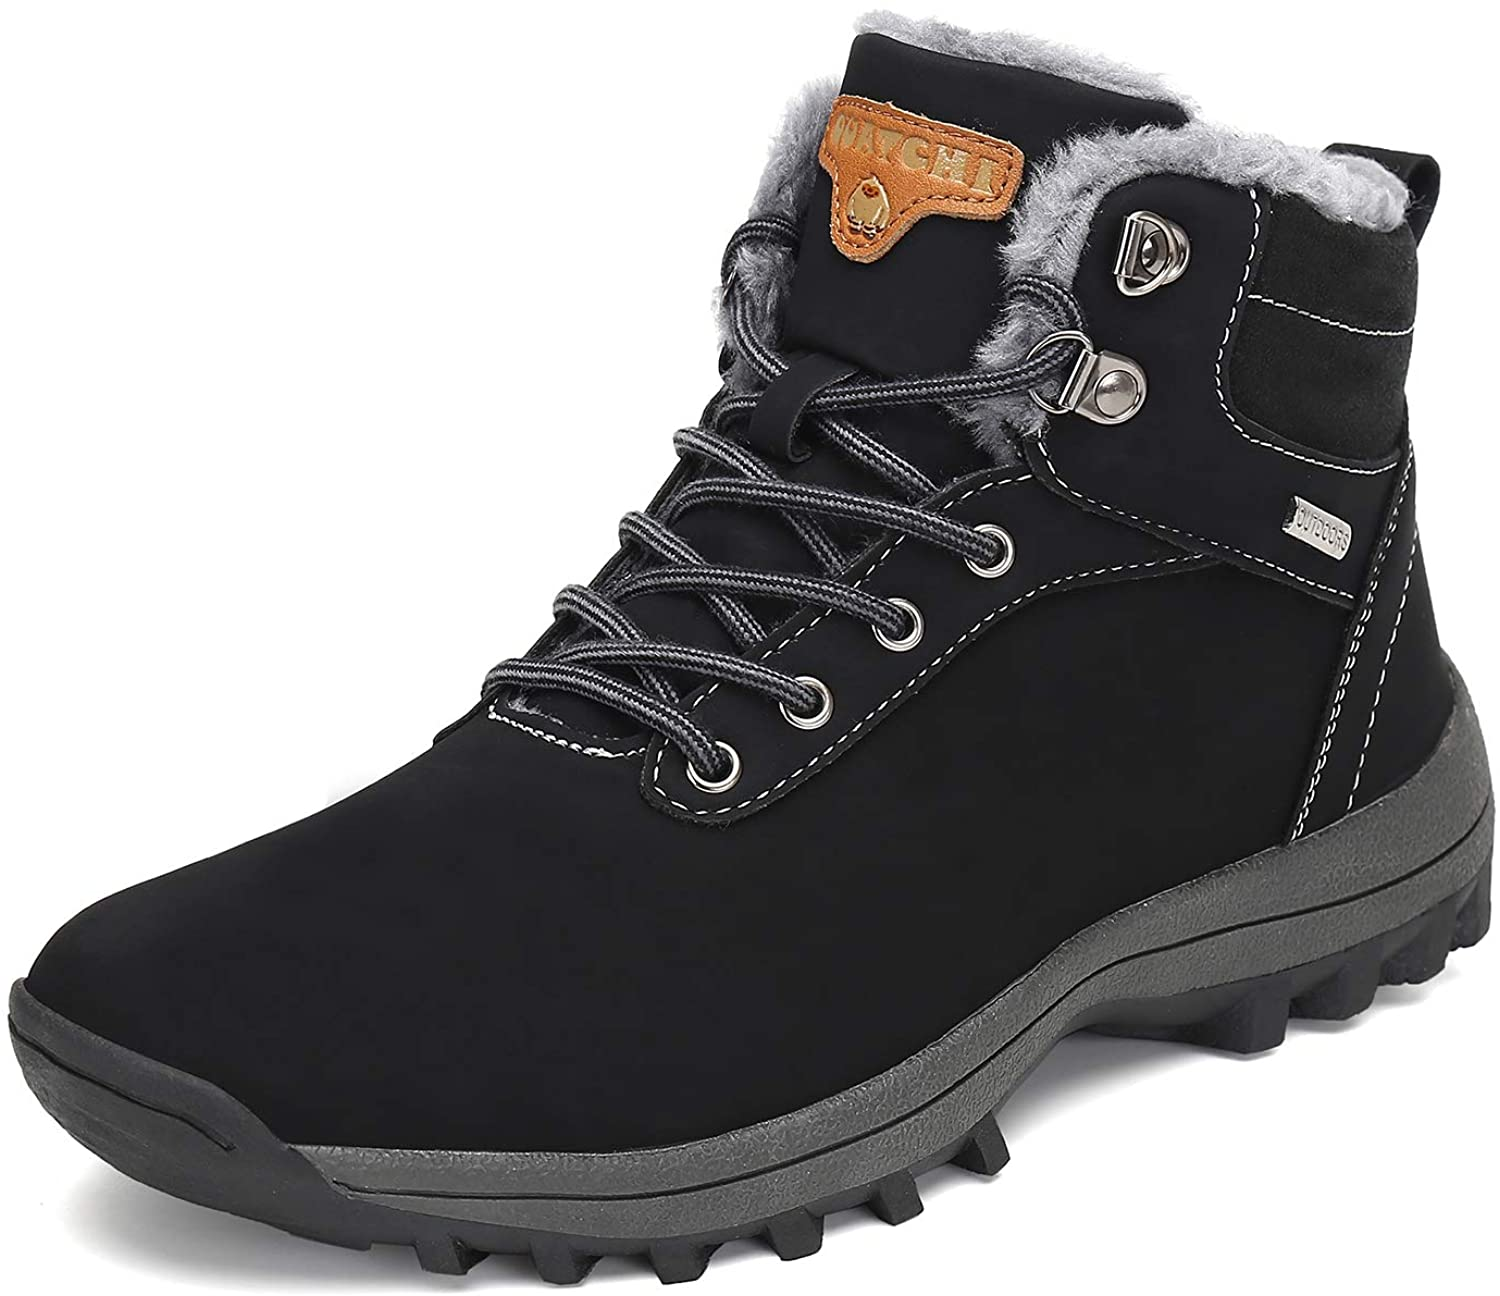 Mens Womens Winter Ankle Snow Hiking Boots Warm Water Resistant Non Slip Soft Lined